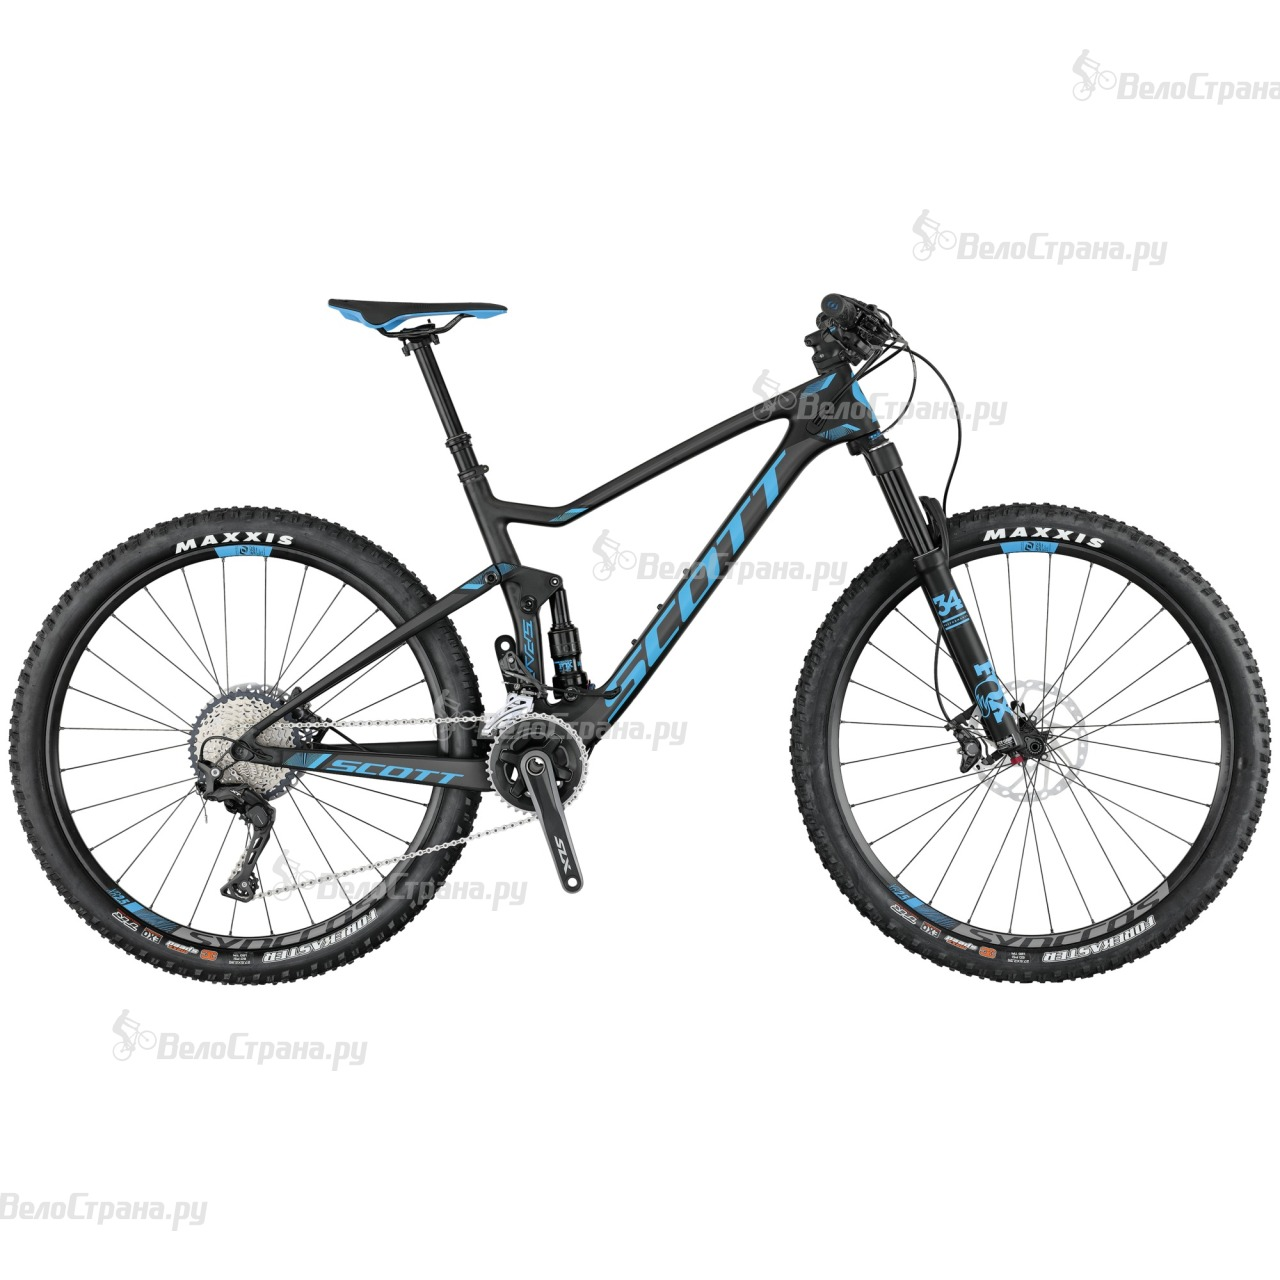 Велосипед Scott Contessa Spark 710 (2017)